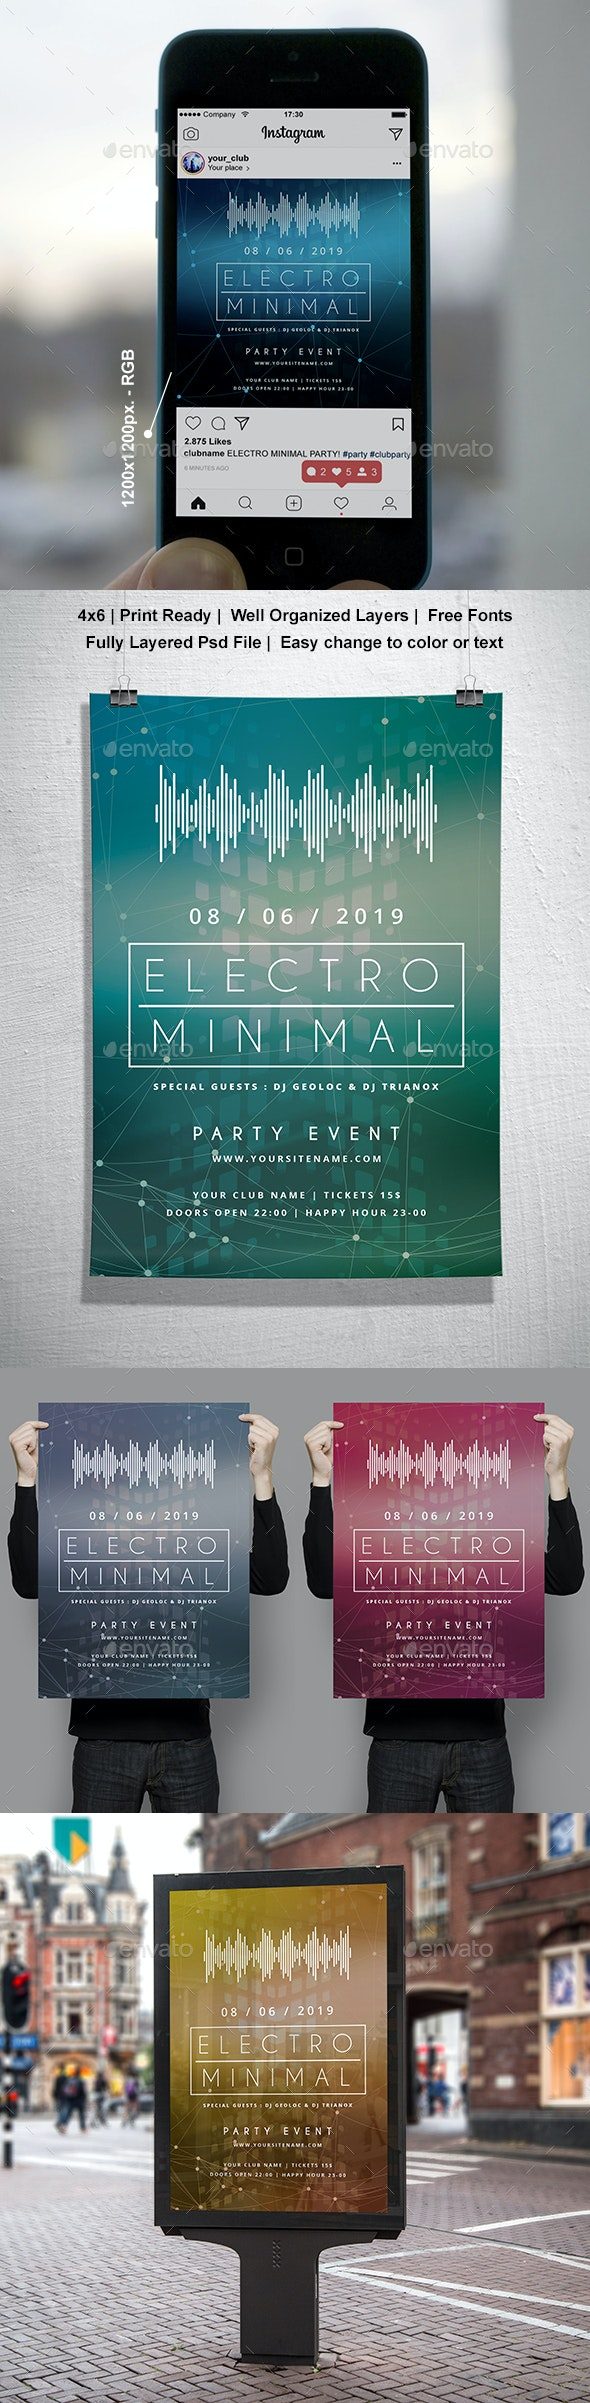 Electro Minimal Music Party Modern Poster Template - Clubs & Parties Events